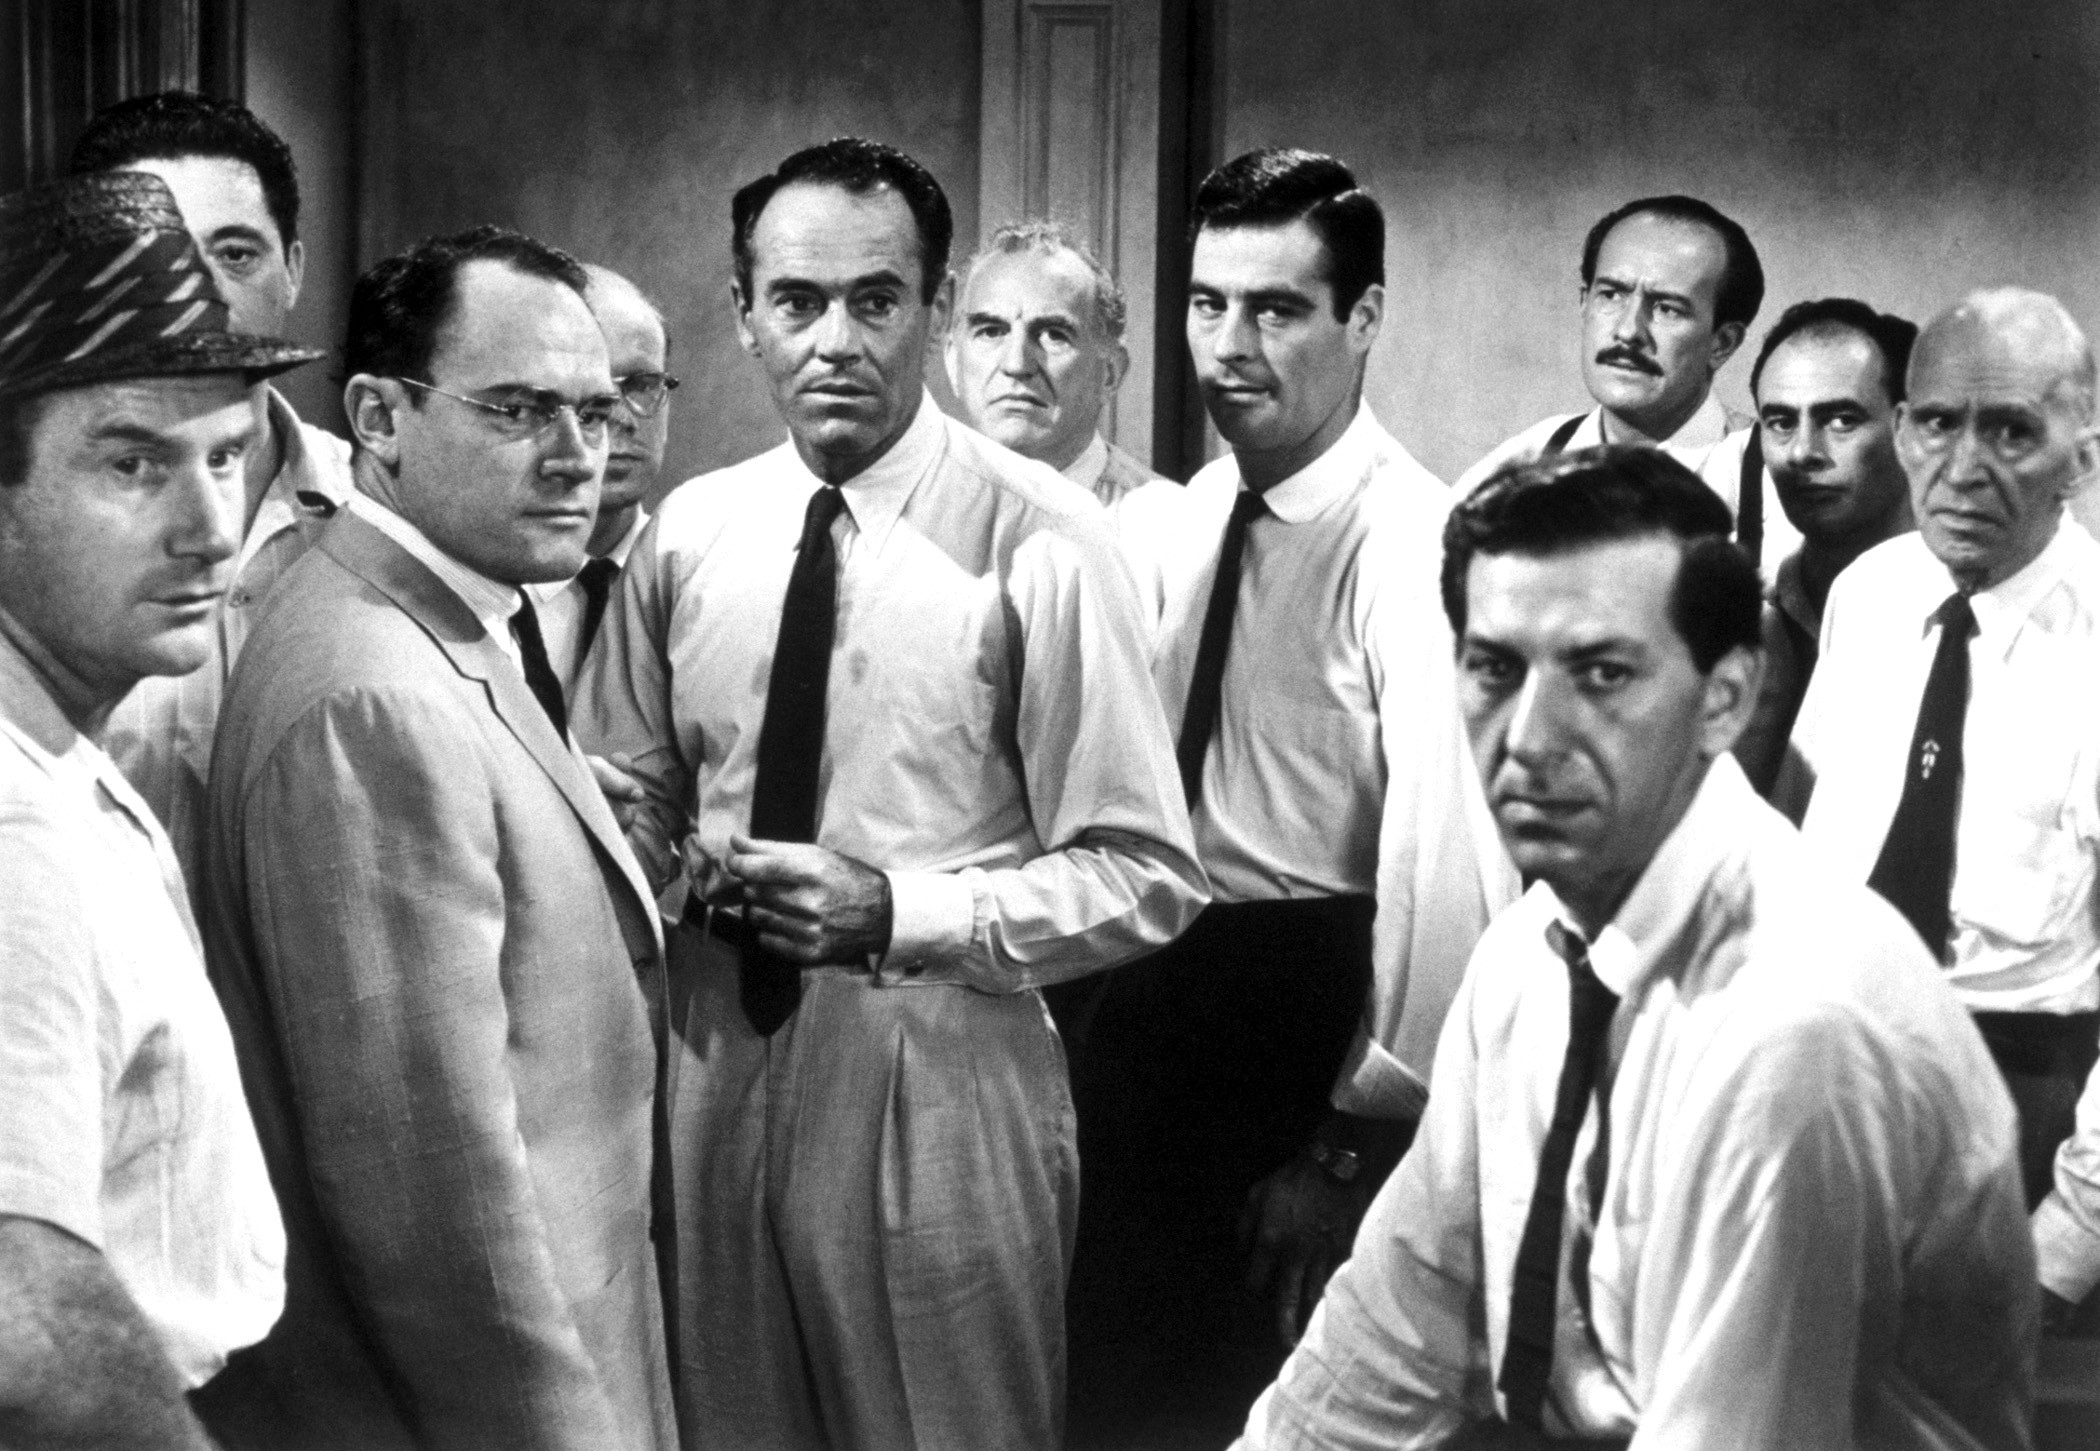 High Resolution Wallpaper | 12 Angry Men 2100x1451 px